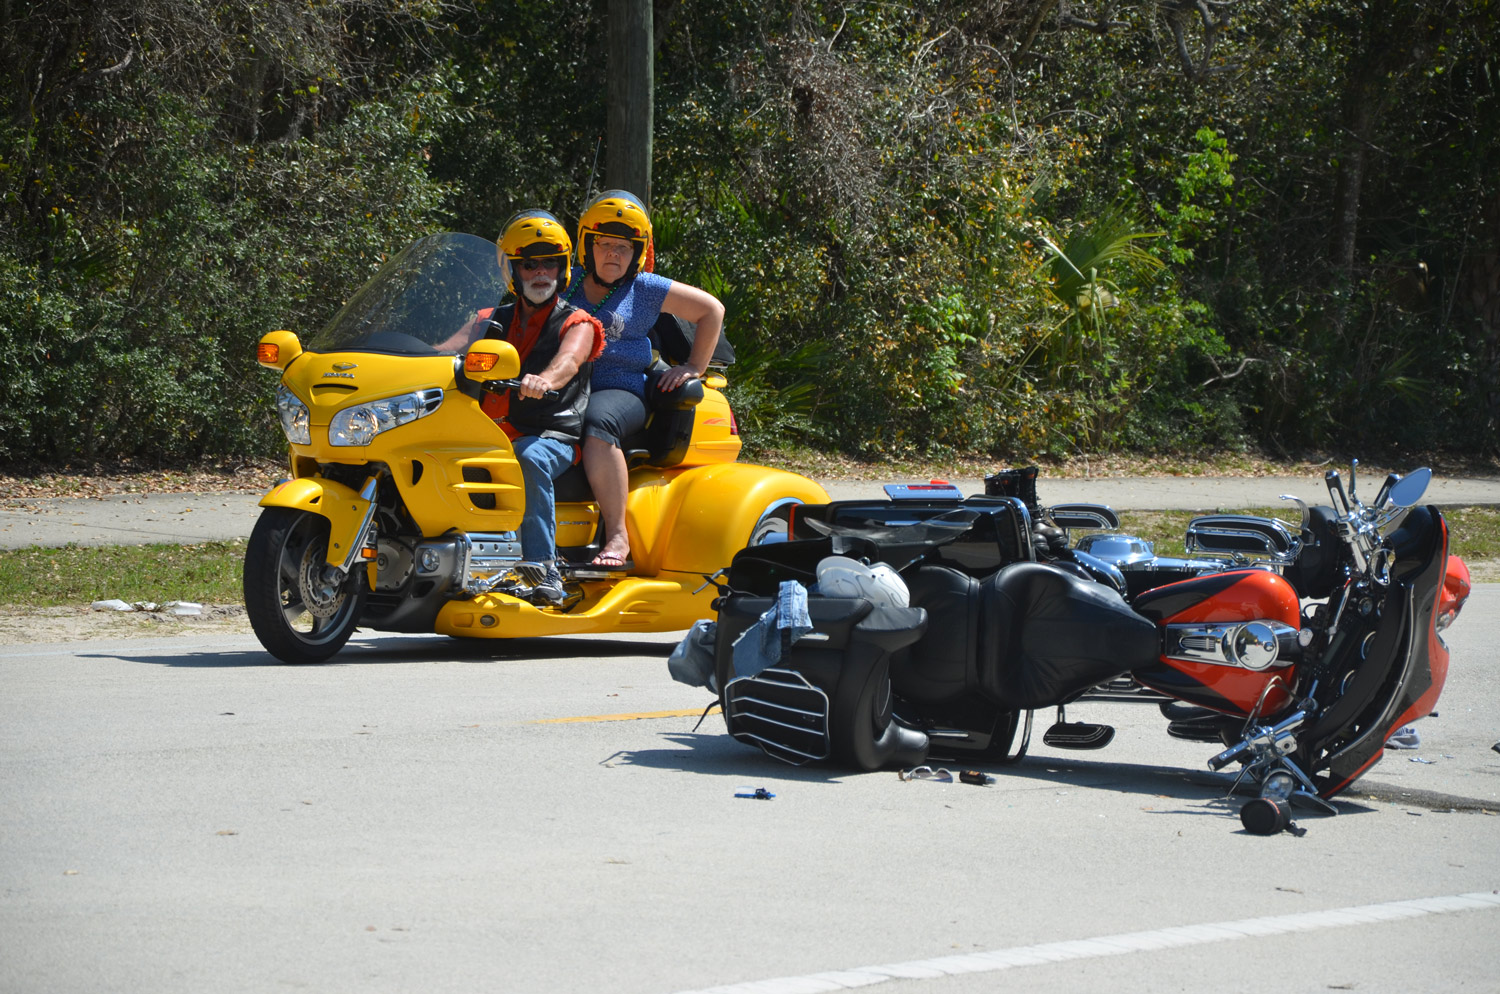 Sixth Serious Bike Week Wreck On A1a Sends 2 To Hospital